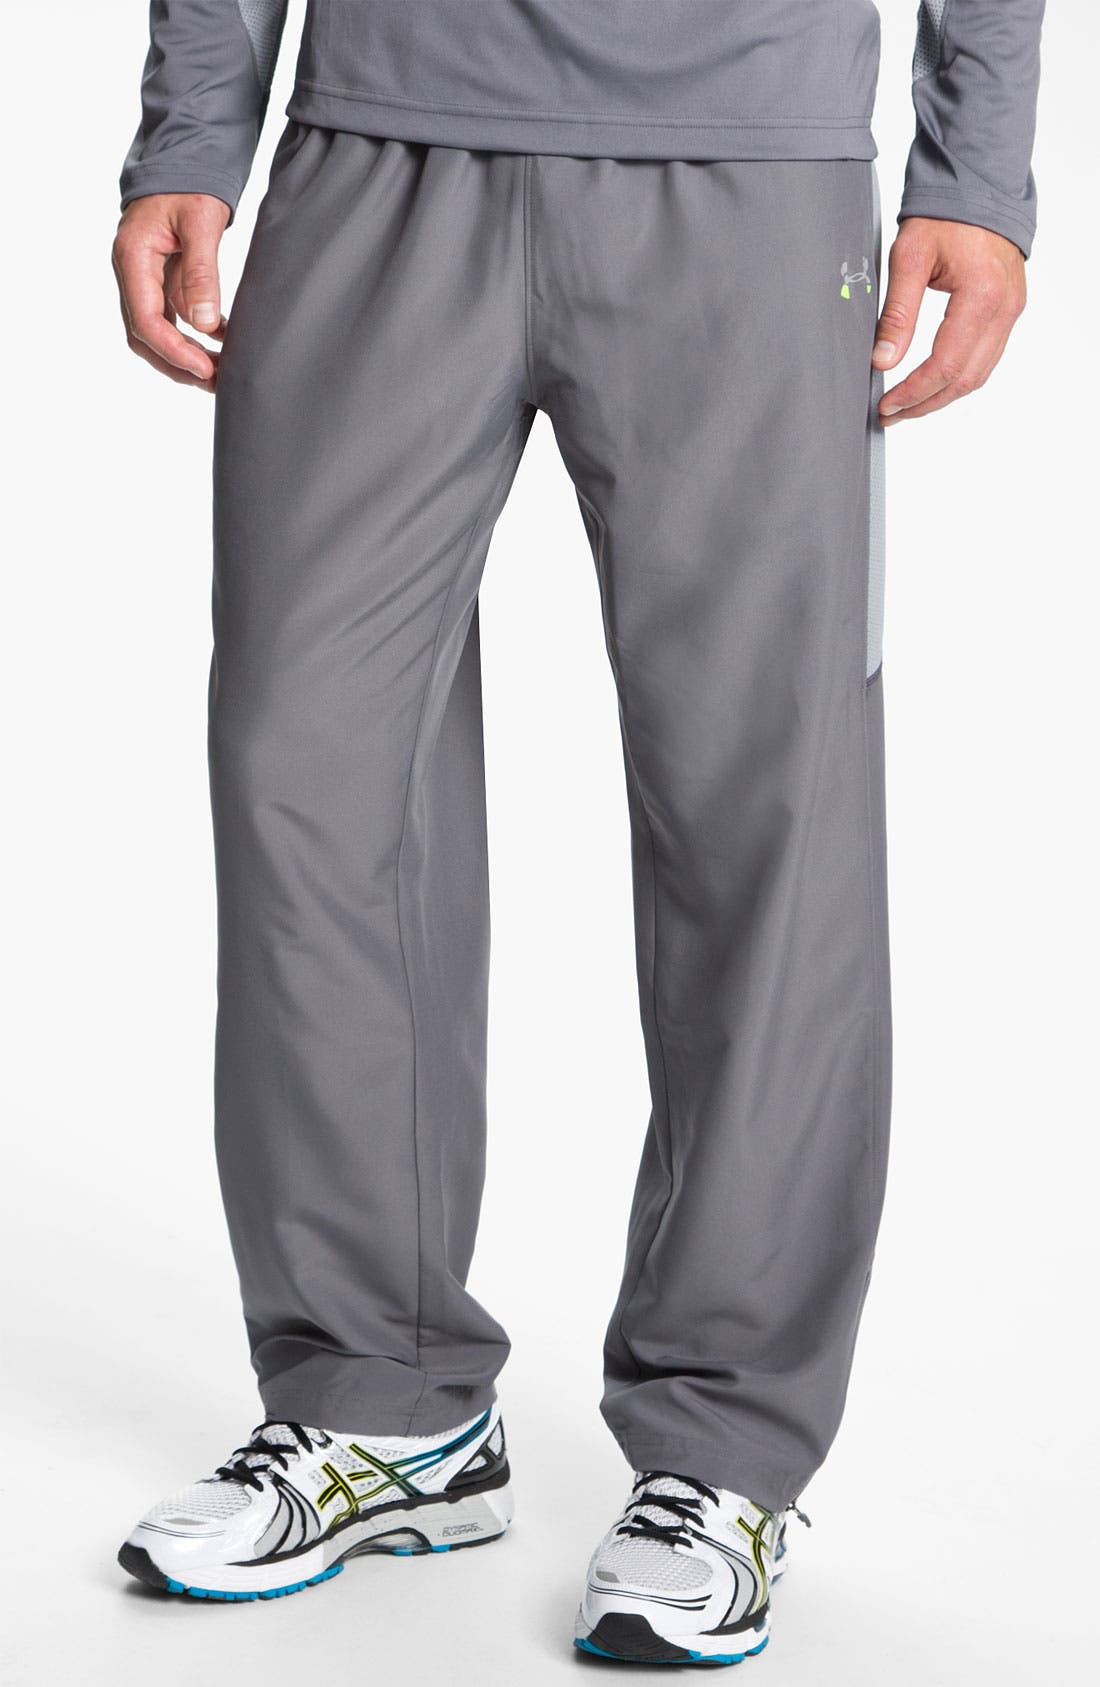 Alternate Image 1 Selected - Under Armour 'Trackside' HeatGear® Woven Track Pants